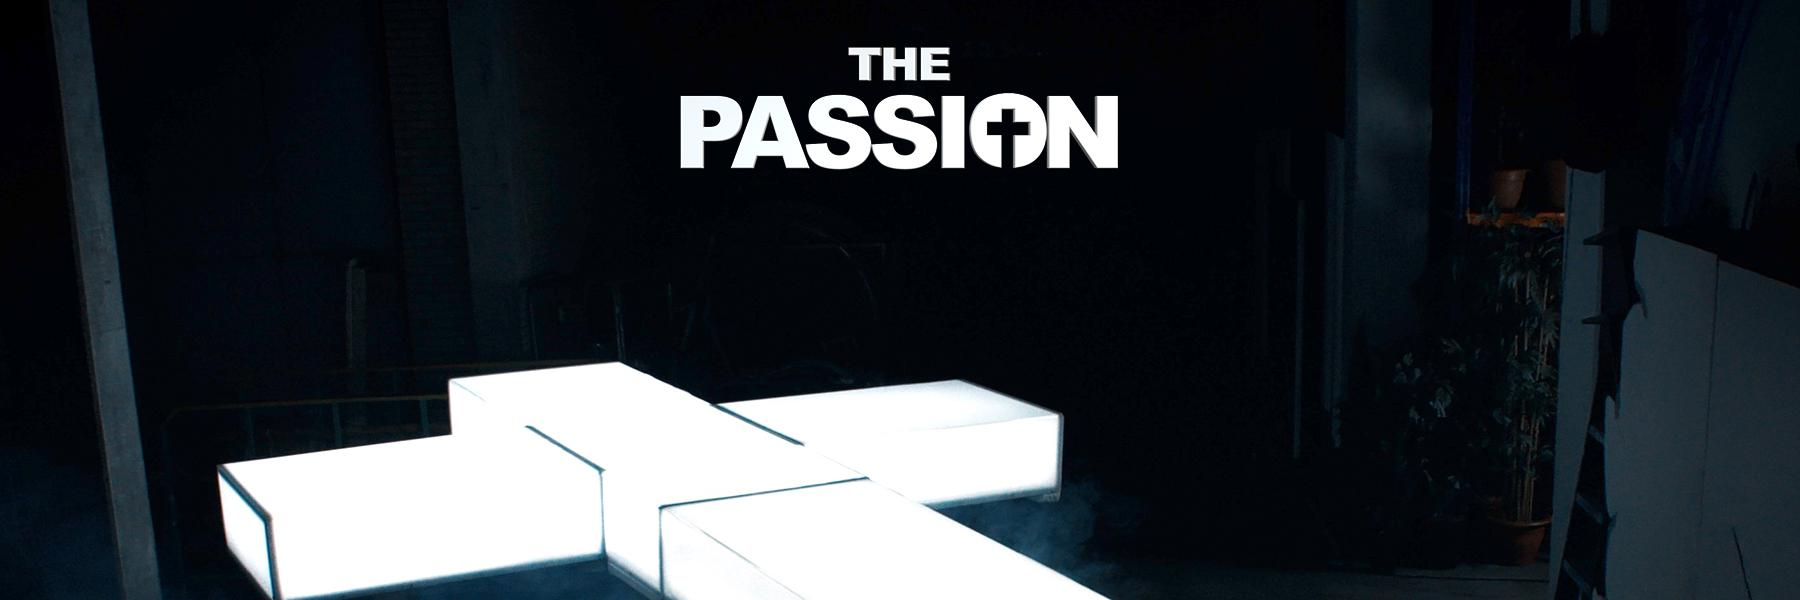 The Passion komt terug